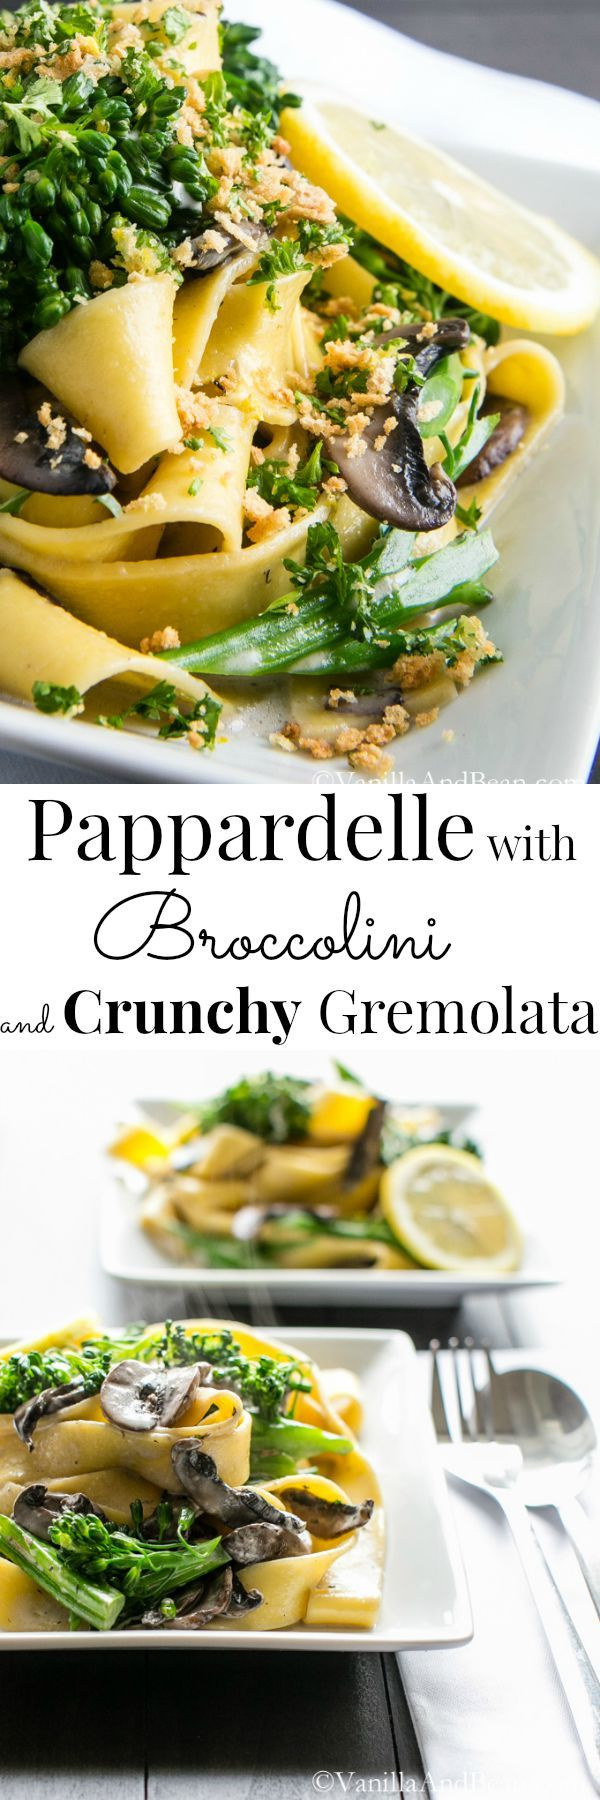 """Pappardelle with Broccolini and Crunchy Gremolata - From Ottolenghi's """"Plenty"""", a quick, elegant and fabulous Vegetarian Pasta 